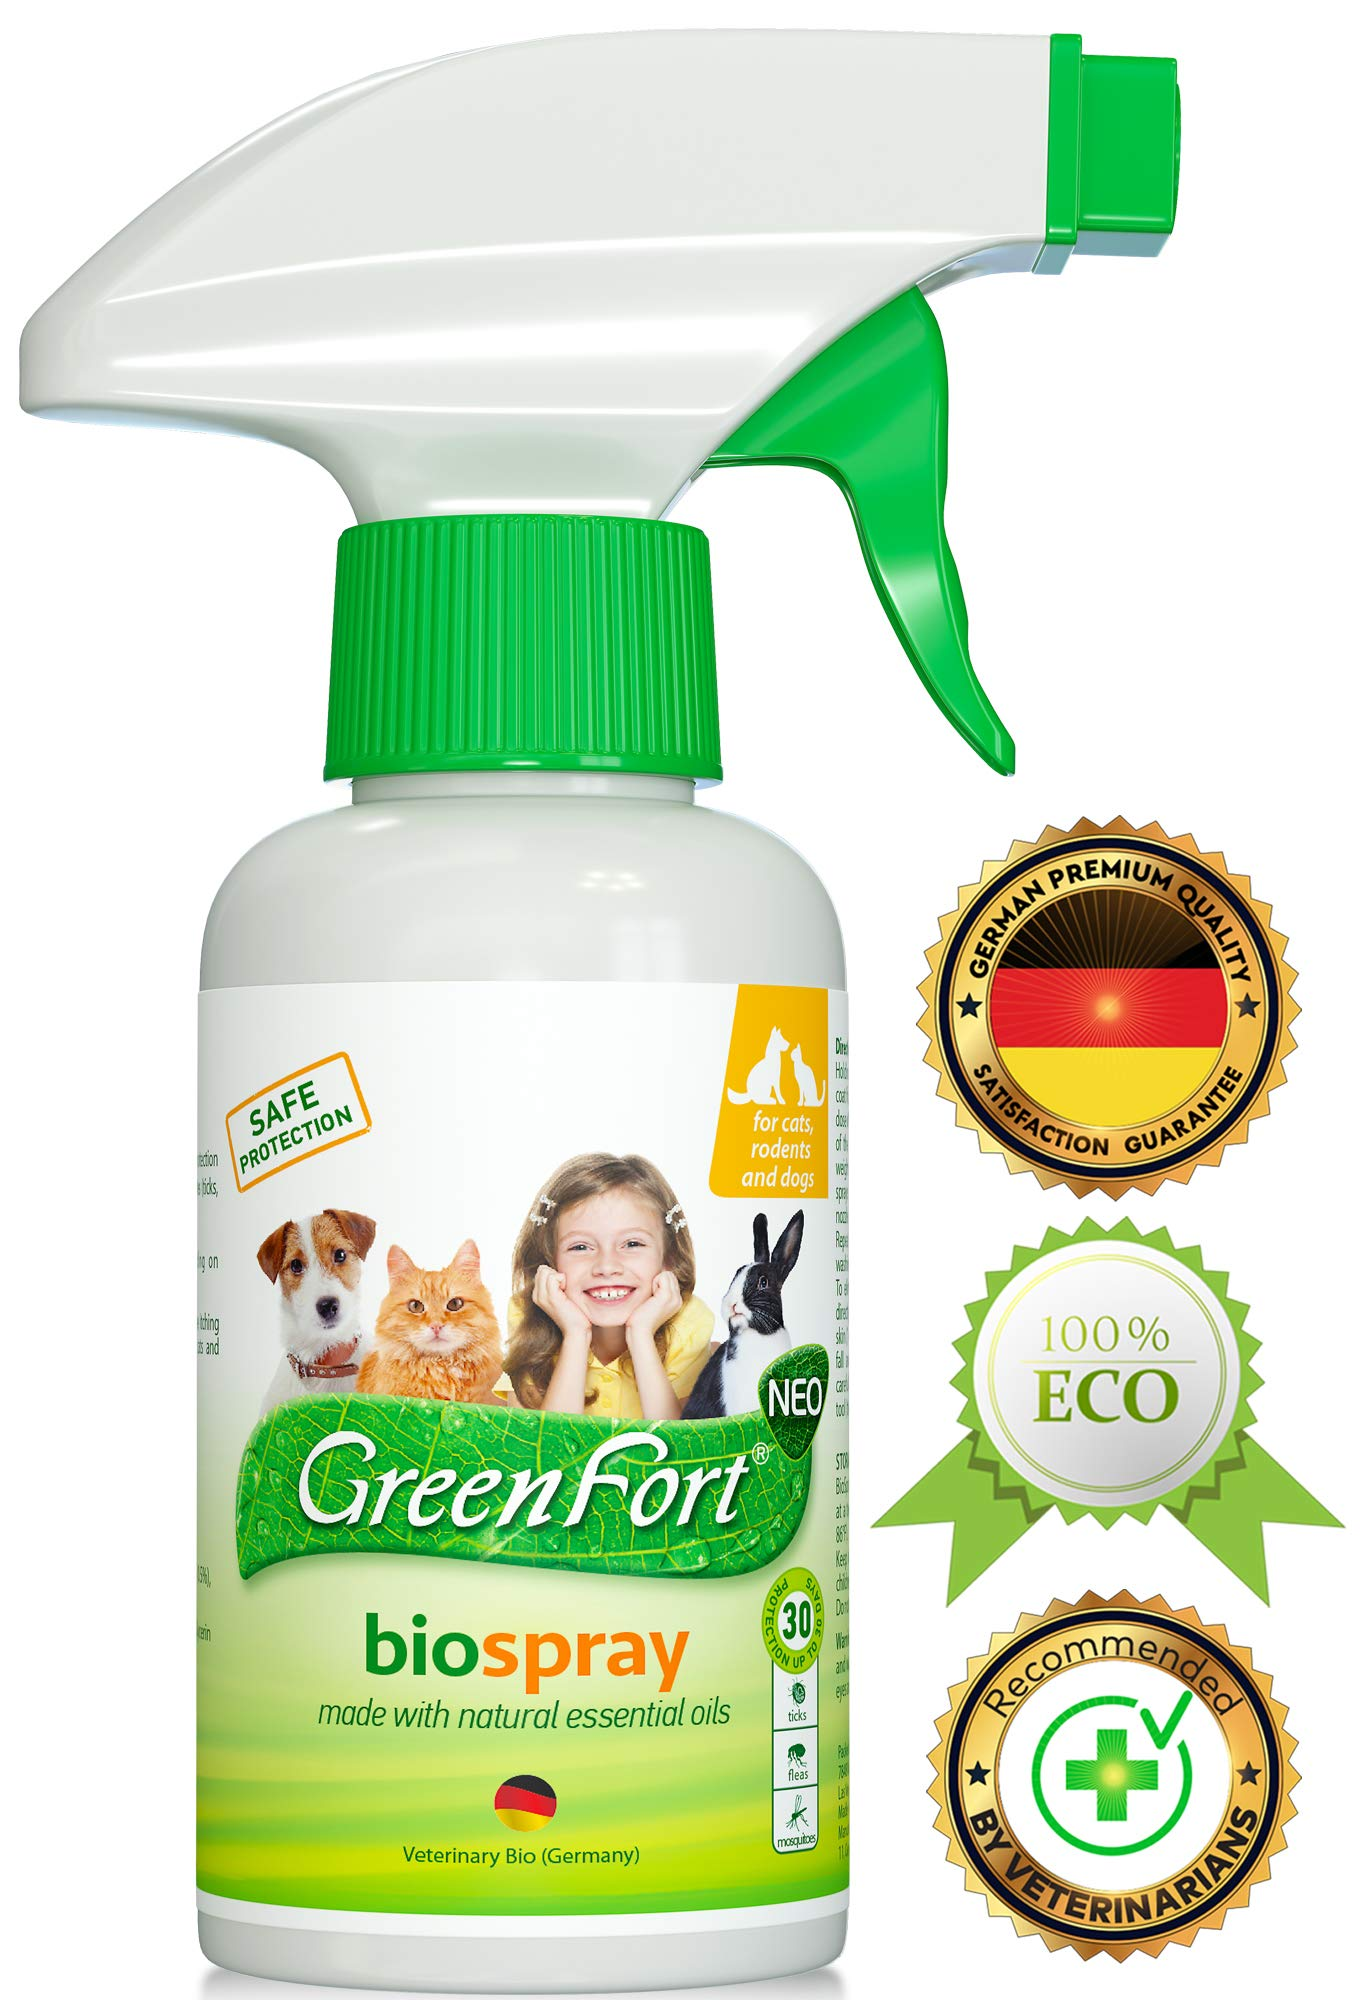 All Natural Flea Tick Home Spray for Dogs and Cats - Gentle Repellent and Safe Control - Recommended Flea Prevention for Pets by Beloved Pets